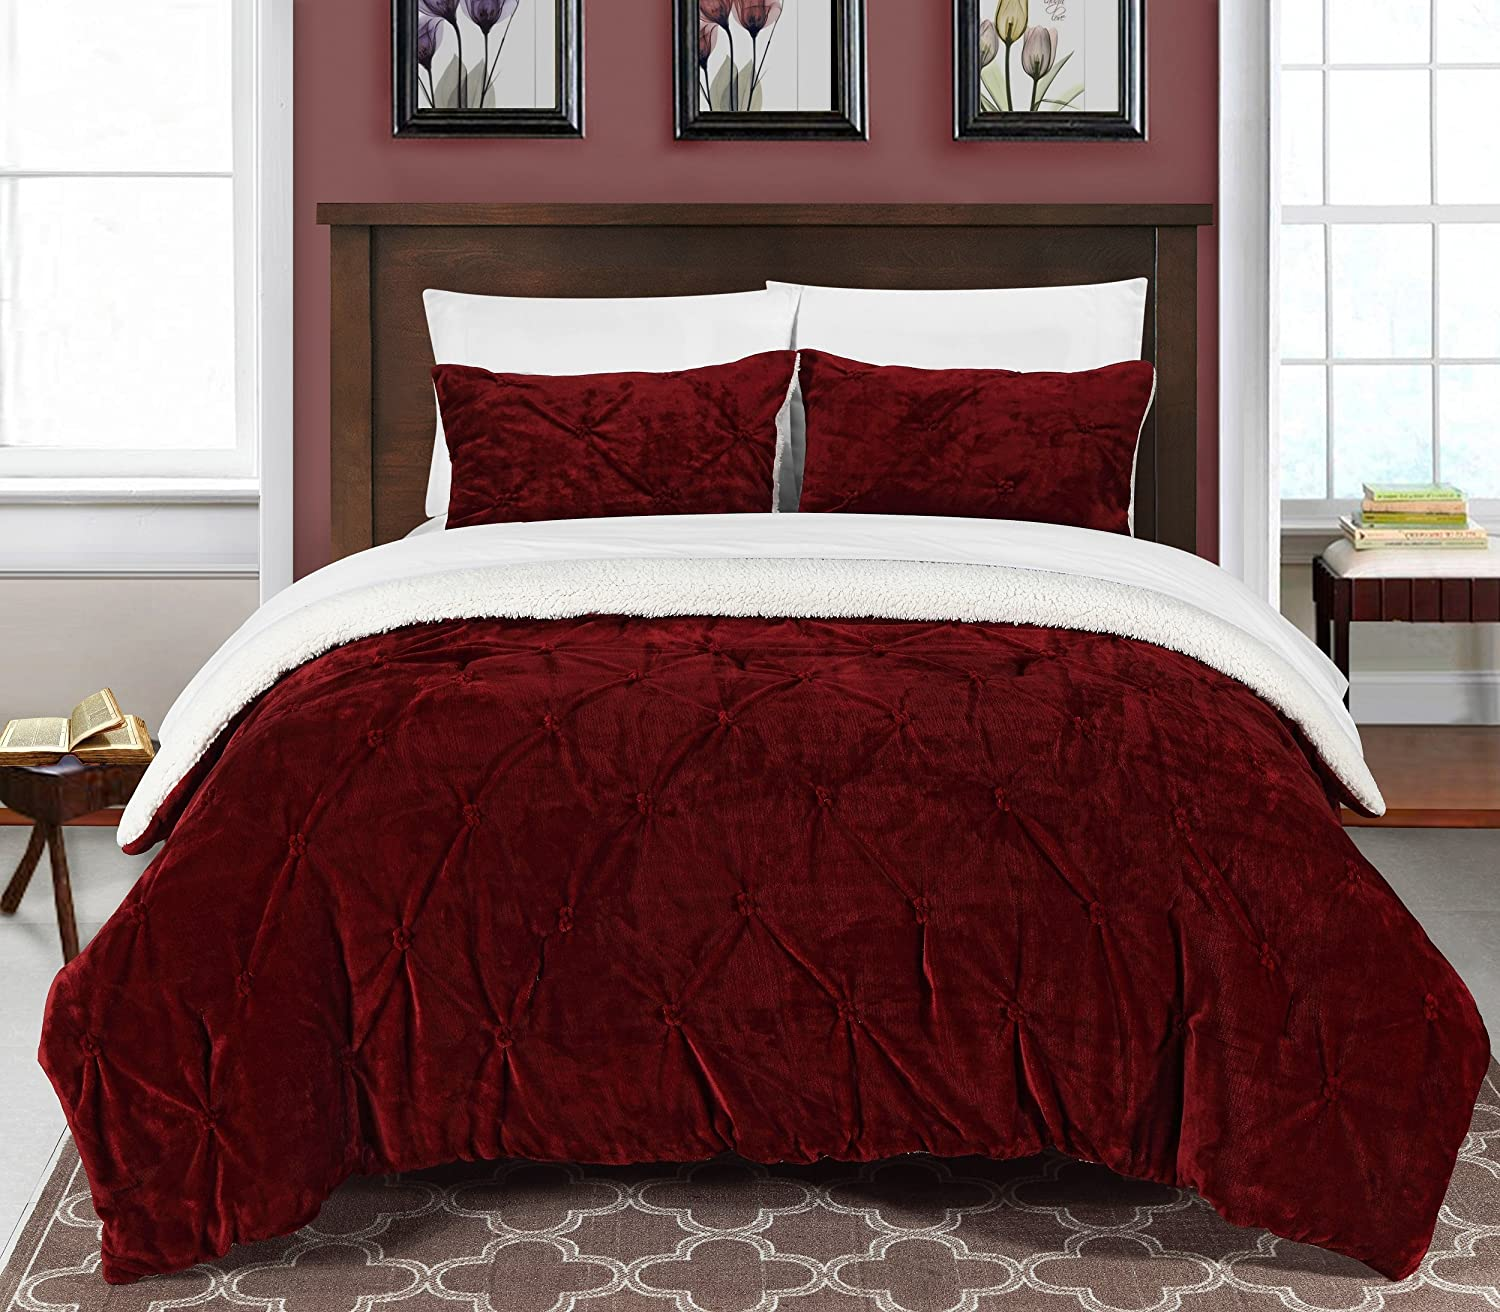 Chic Home 3 Piece Josepha Pinch Pleated Ruffled & Pintuck Sherpa Lined Comforter Set, King, Burgundy